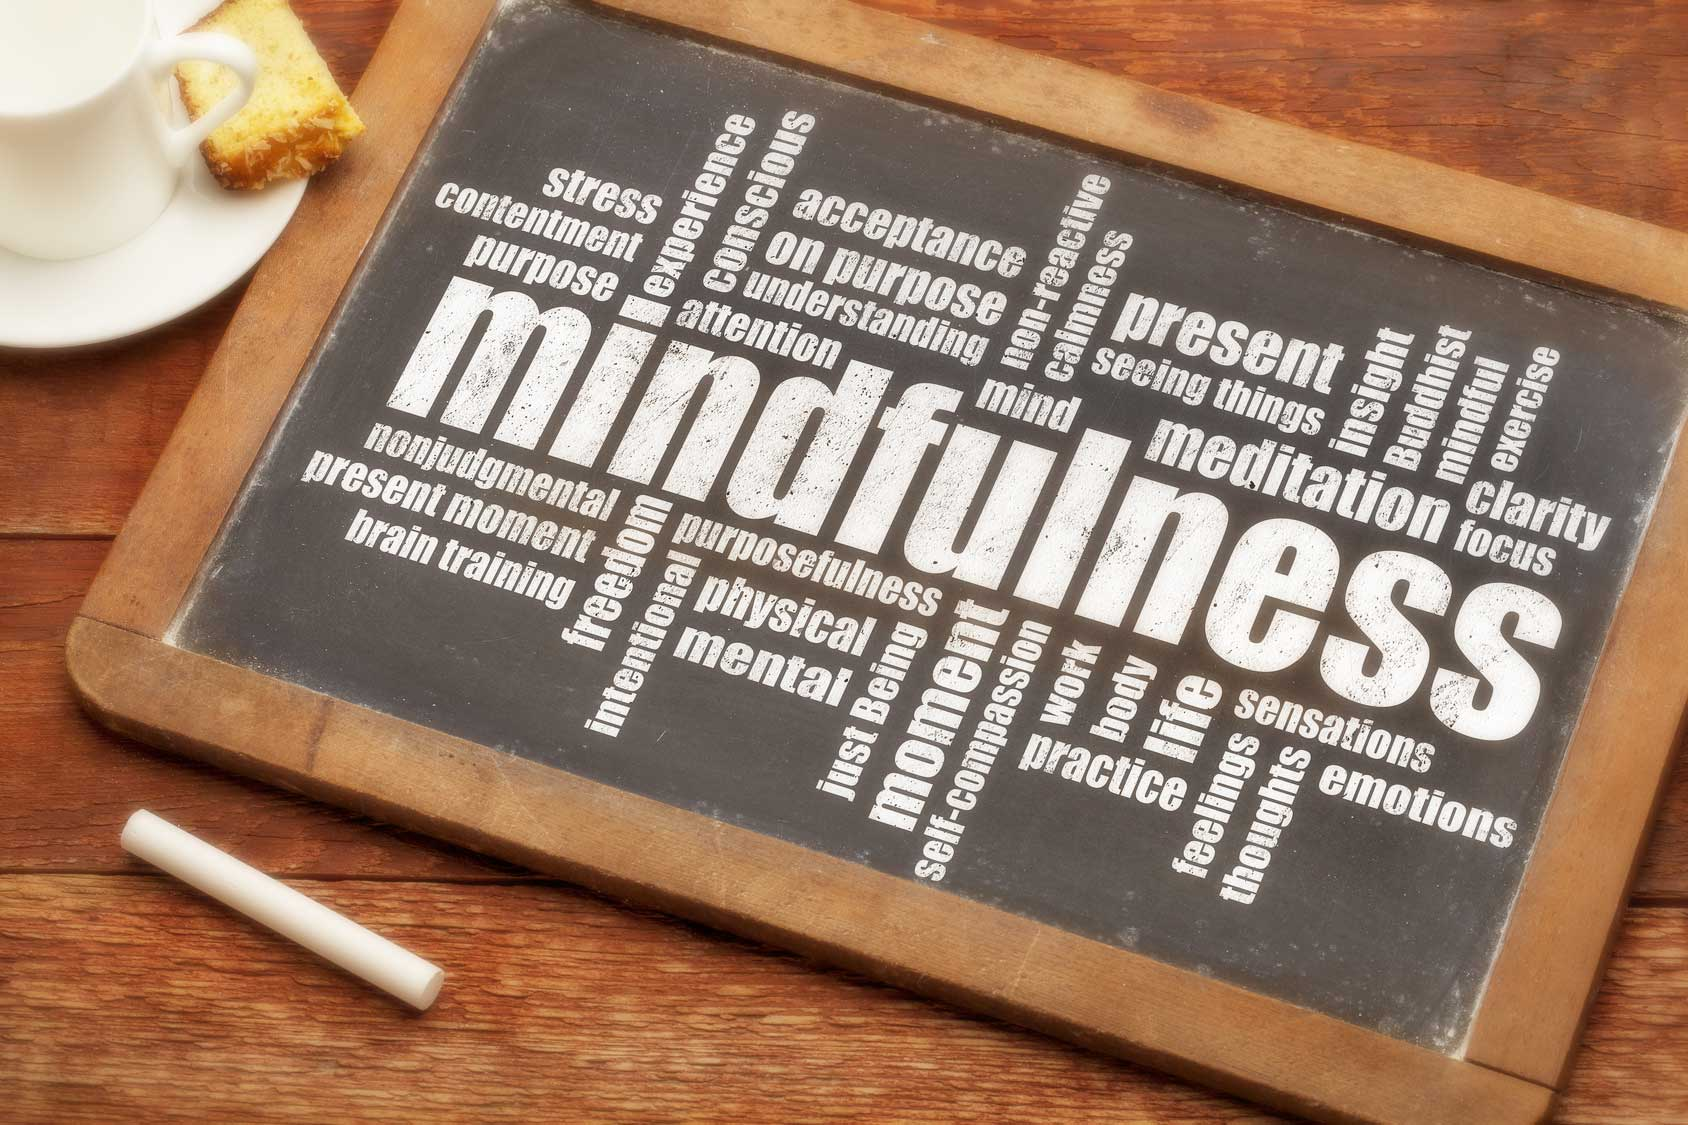 12 Easy Ways To Practice Daily Mindfulness